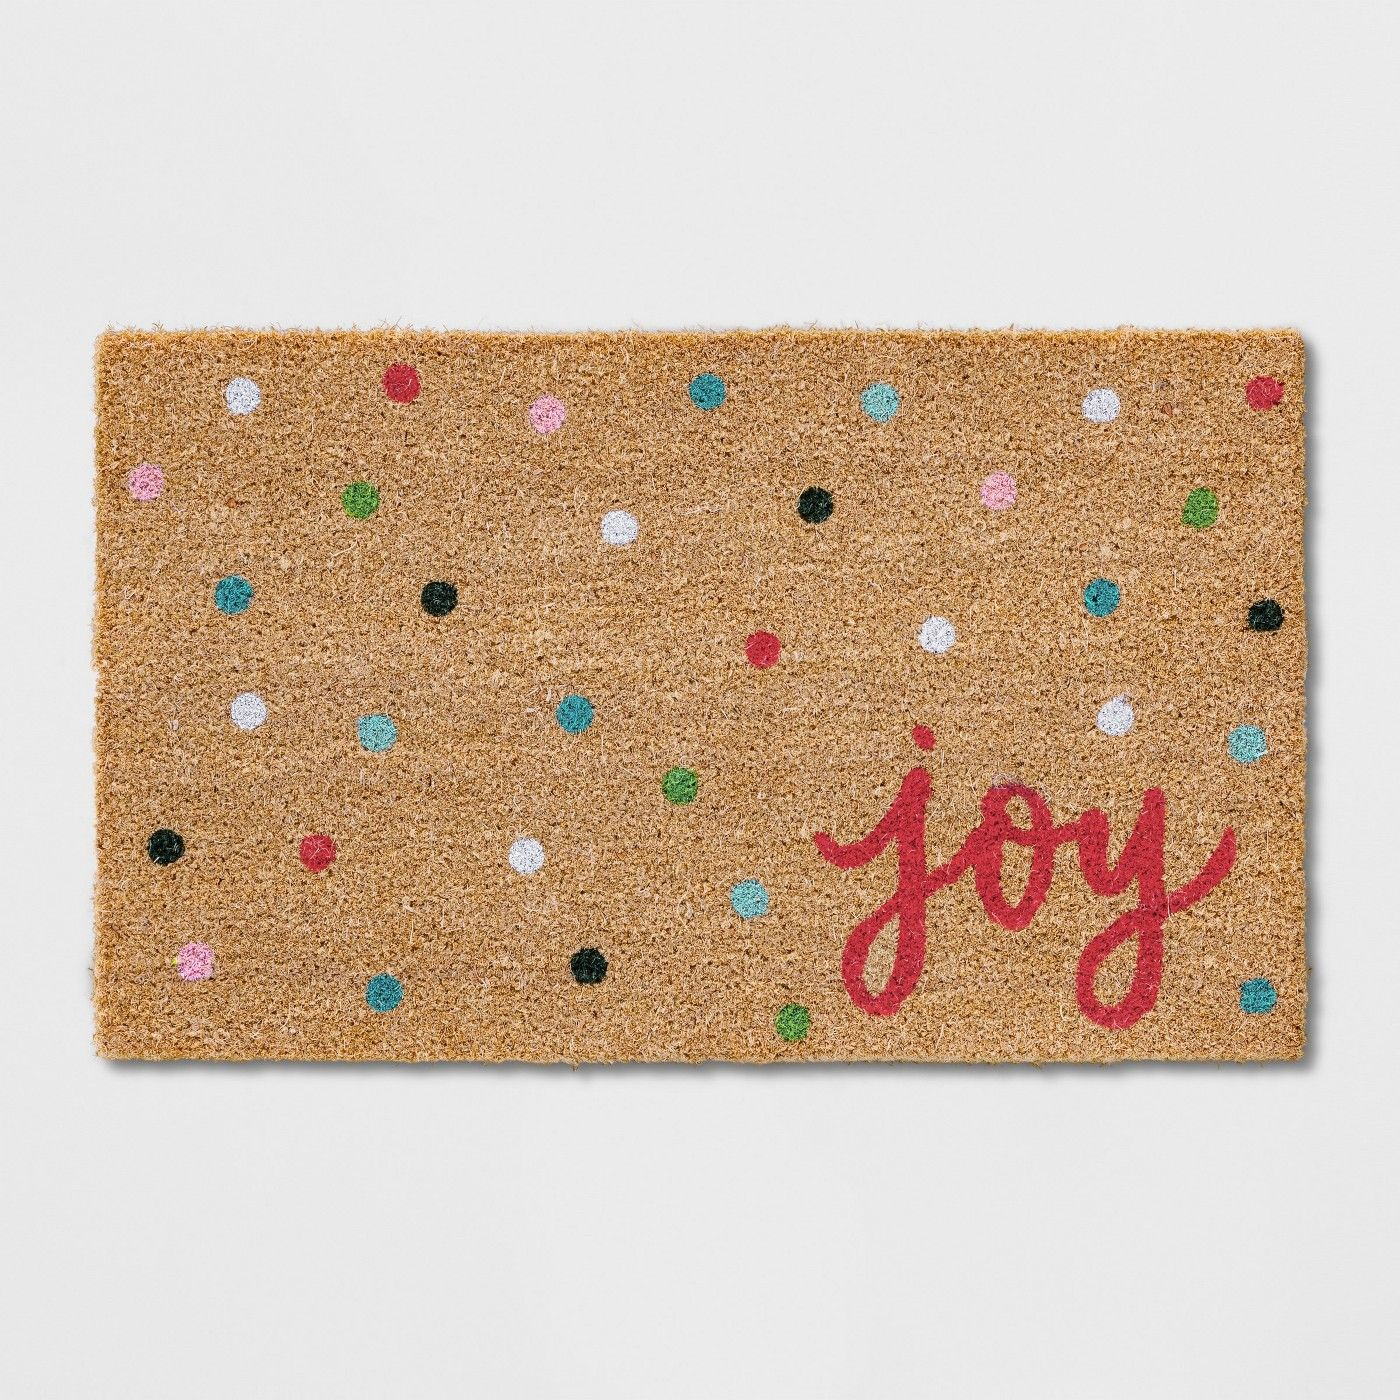 1 6 X2 6 Letters Tufted Doormats Poinsettia Opalhouse Image 1 Of 3 Door Mat Door Mat Diy Opalhouse